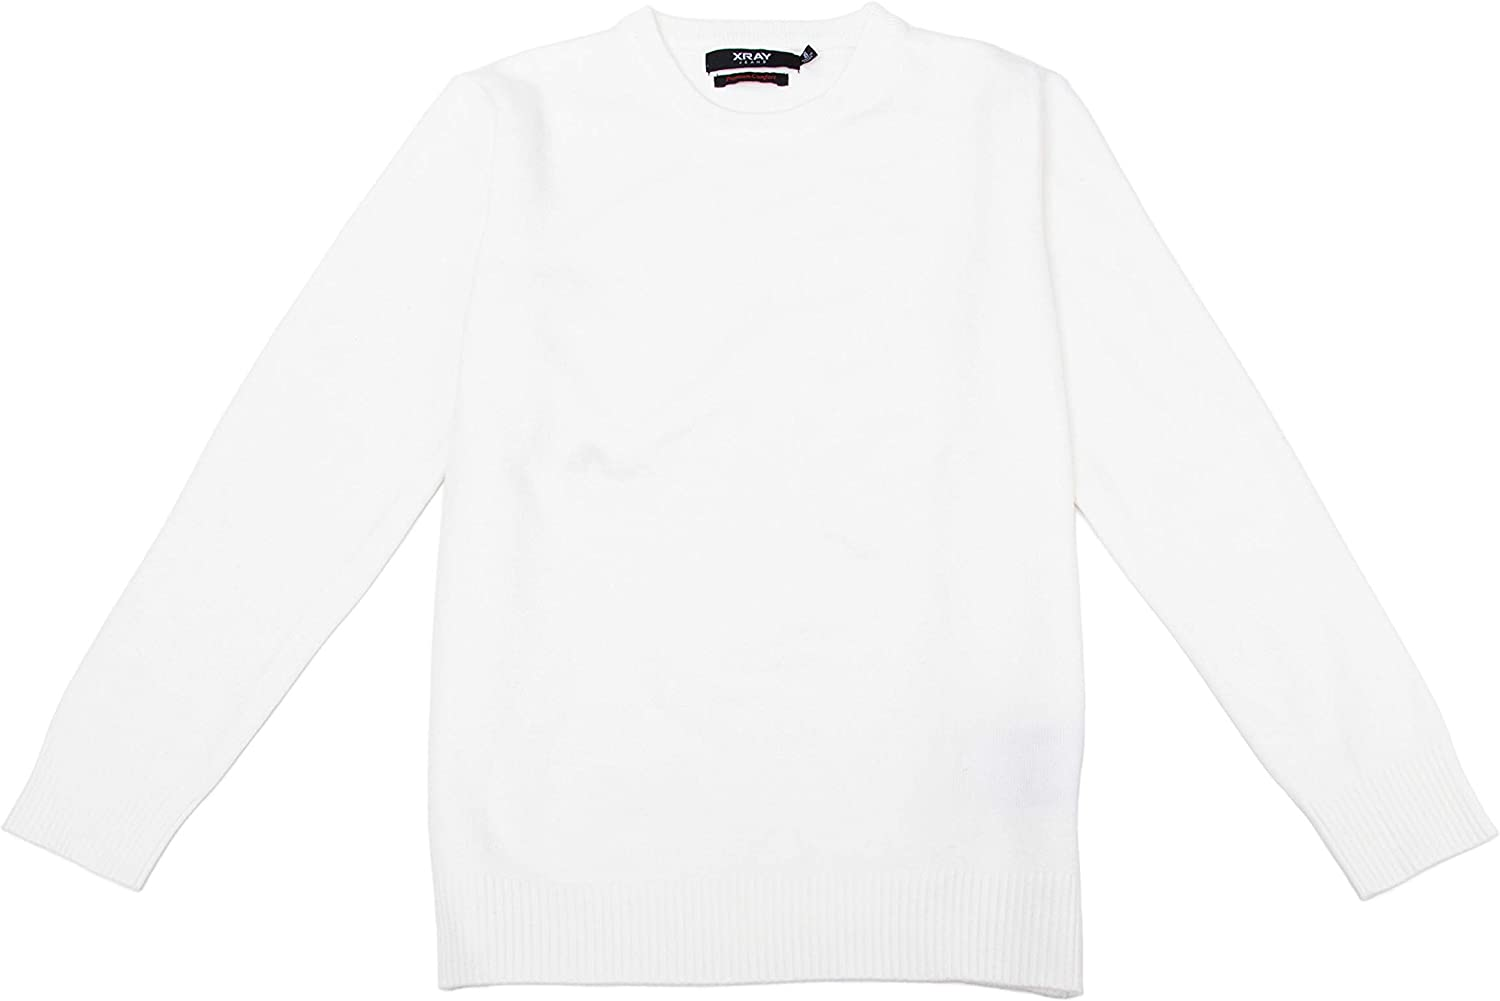 X RAY Boys Crewneck Sweater - Soft Slim Fit Middleweight Pullover Sweaters for Kids